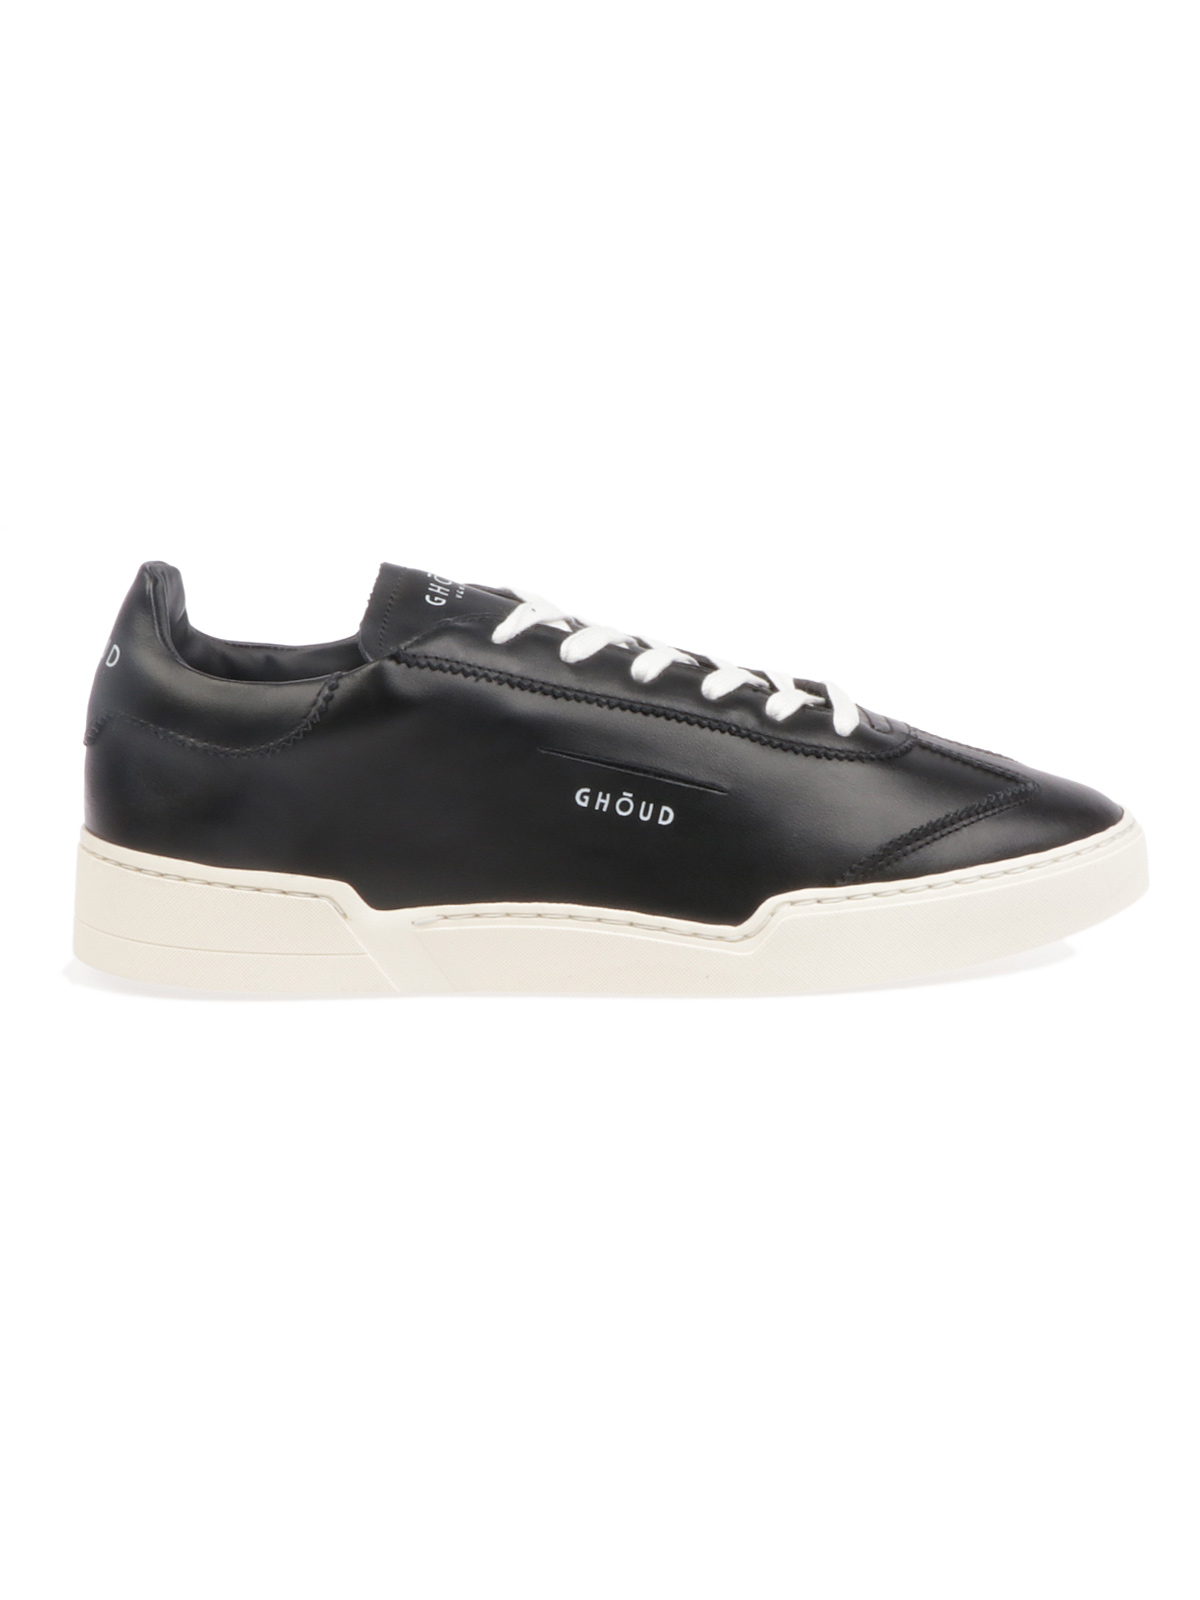 Picture of GHOUD | Men's Leather Sneakers